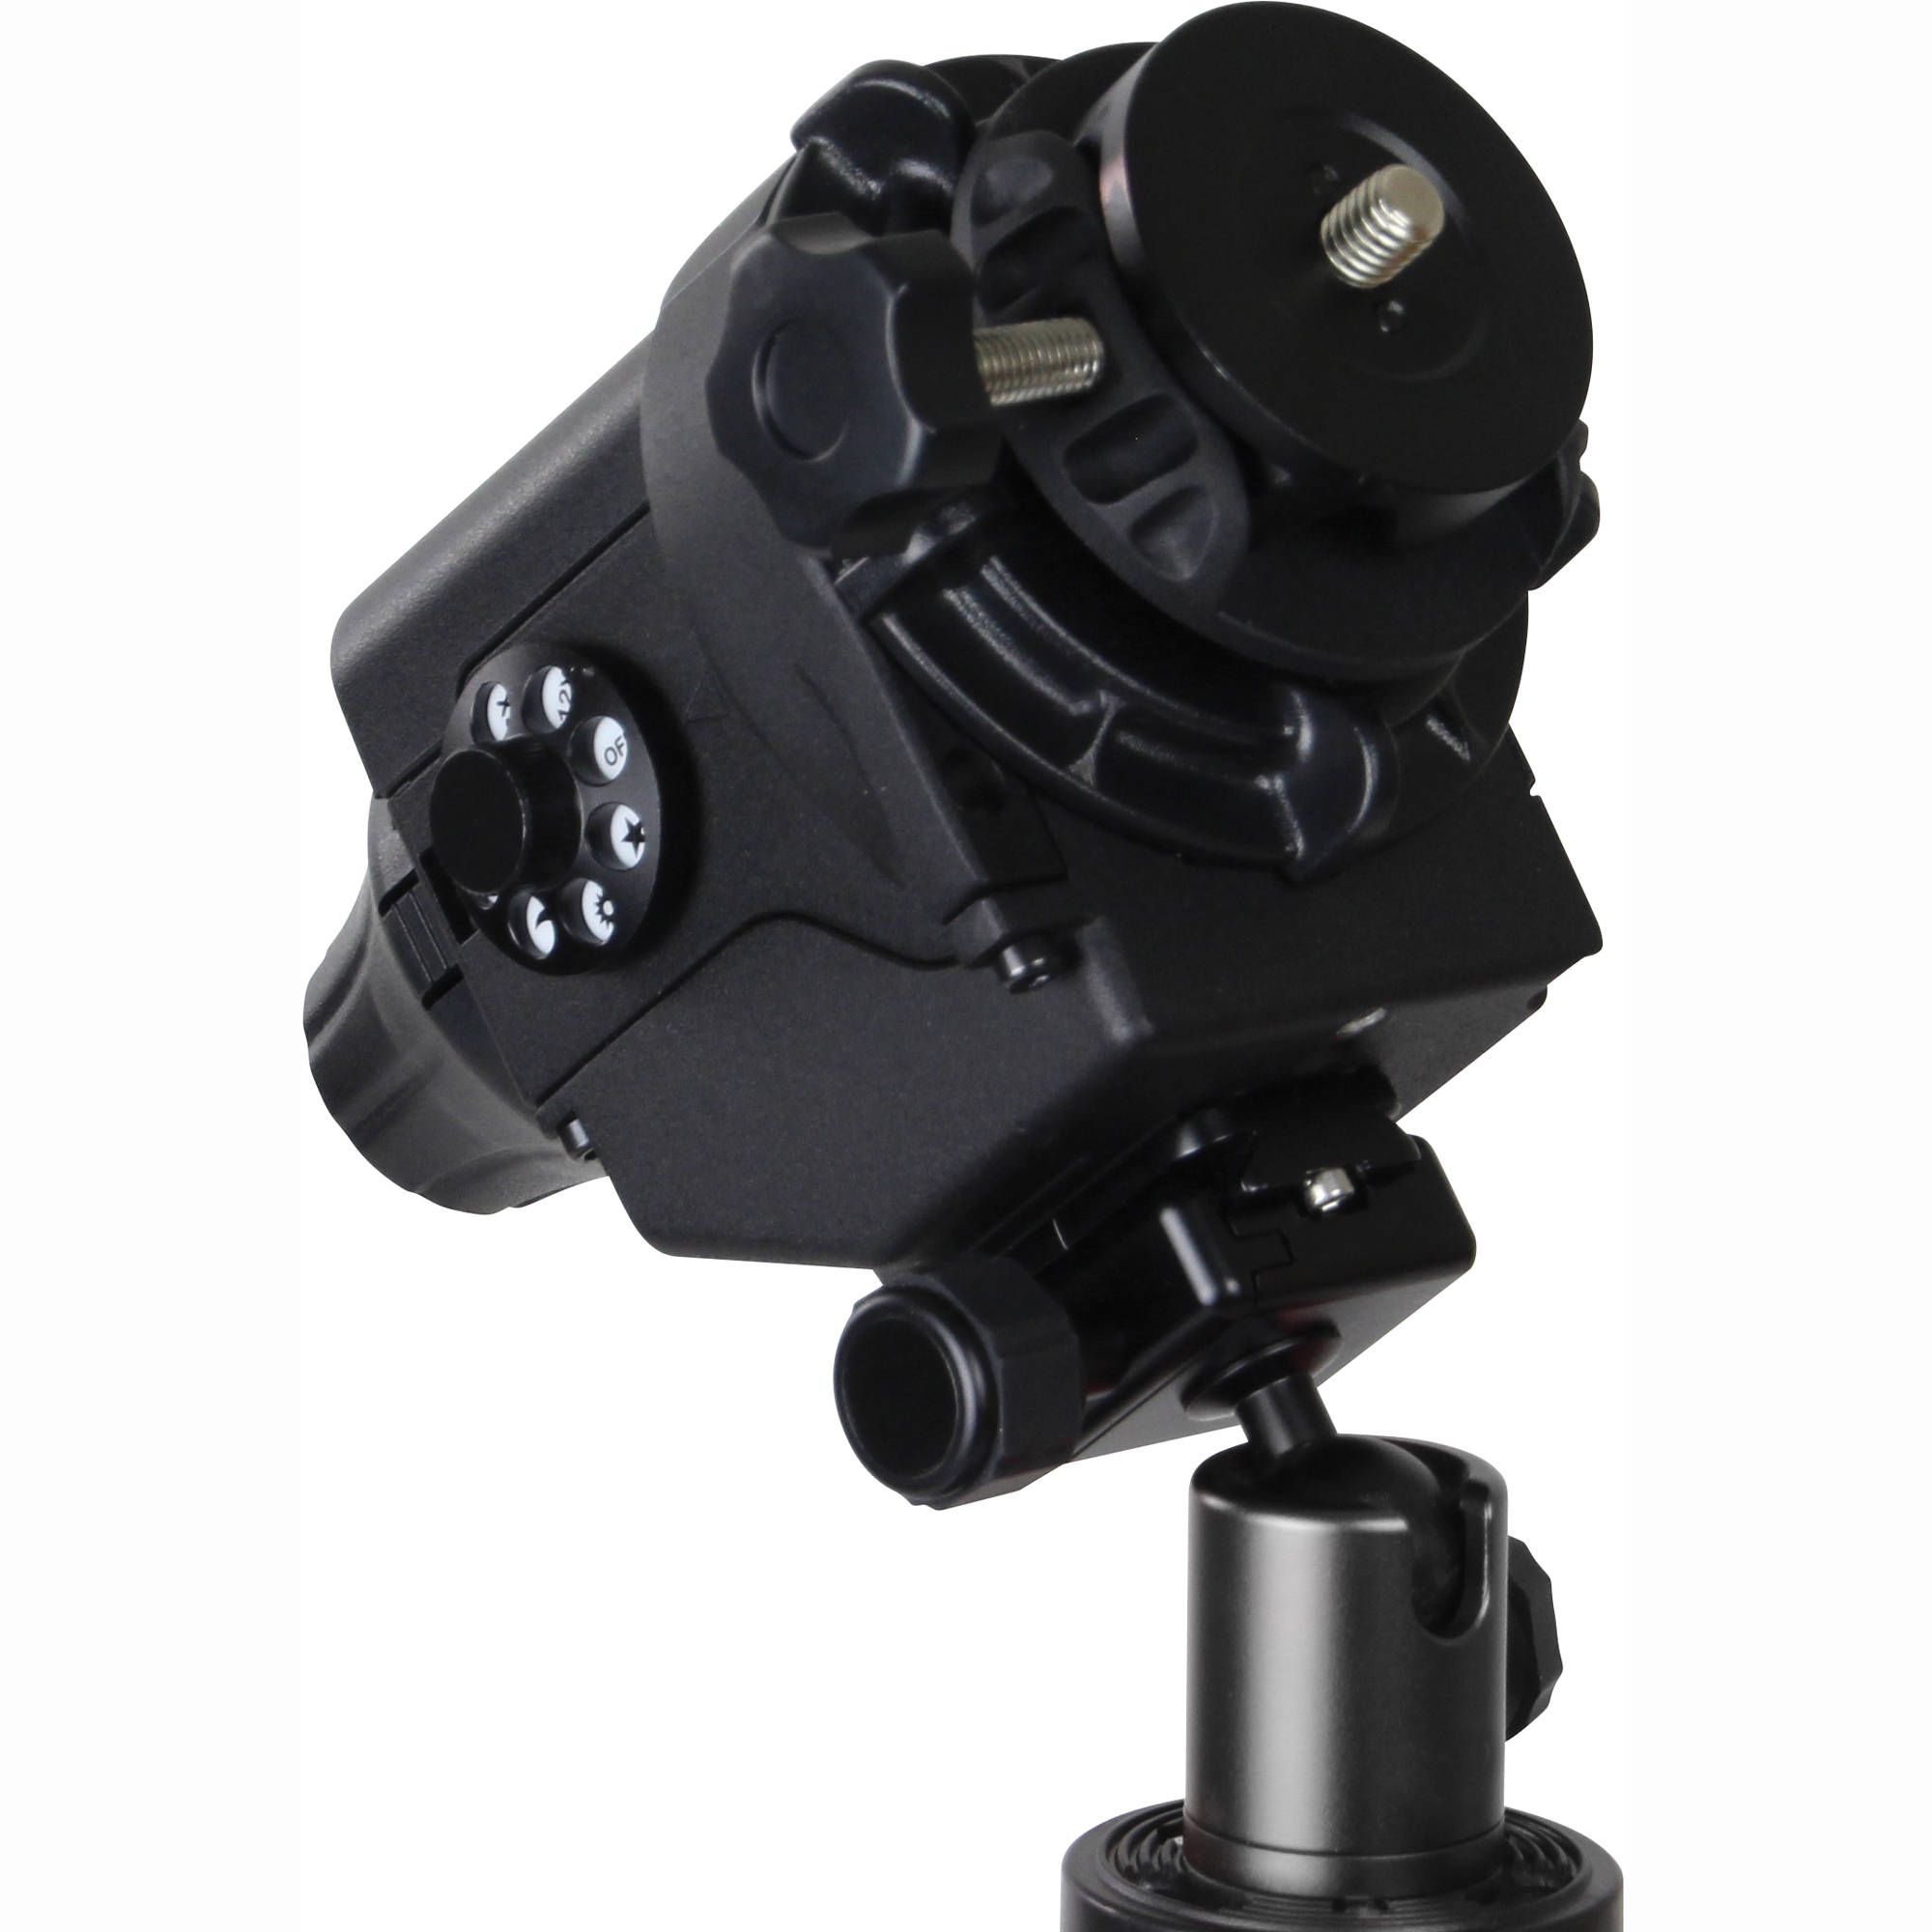 Sky watcher star adventurer motorized mount photo package for Motorized video camera mount